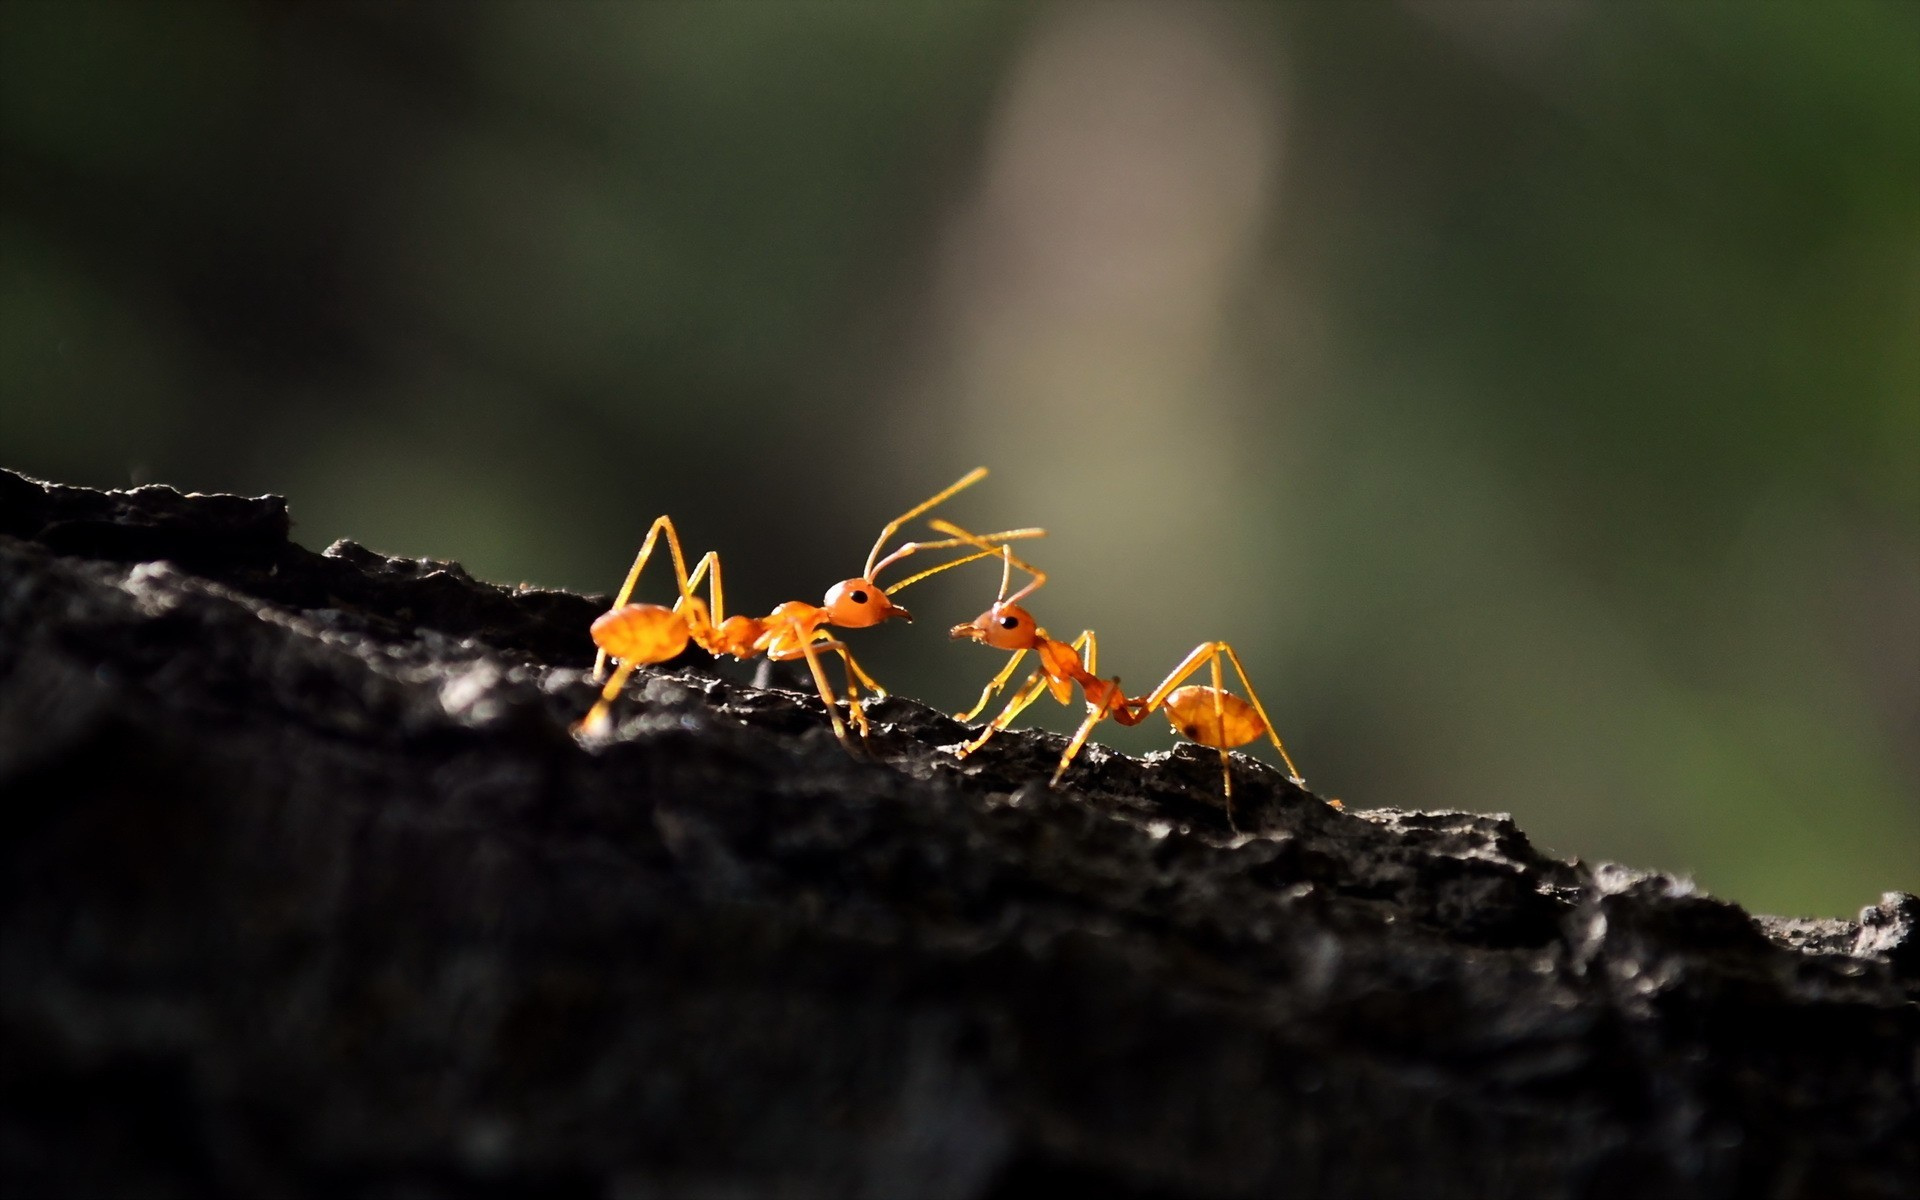 Ant Macro, HD Photography, 4k Wallpapers, Image, Backgrounds